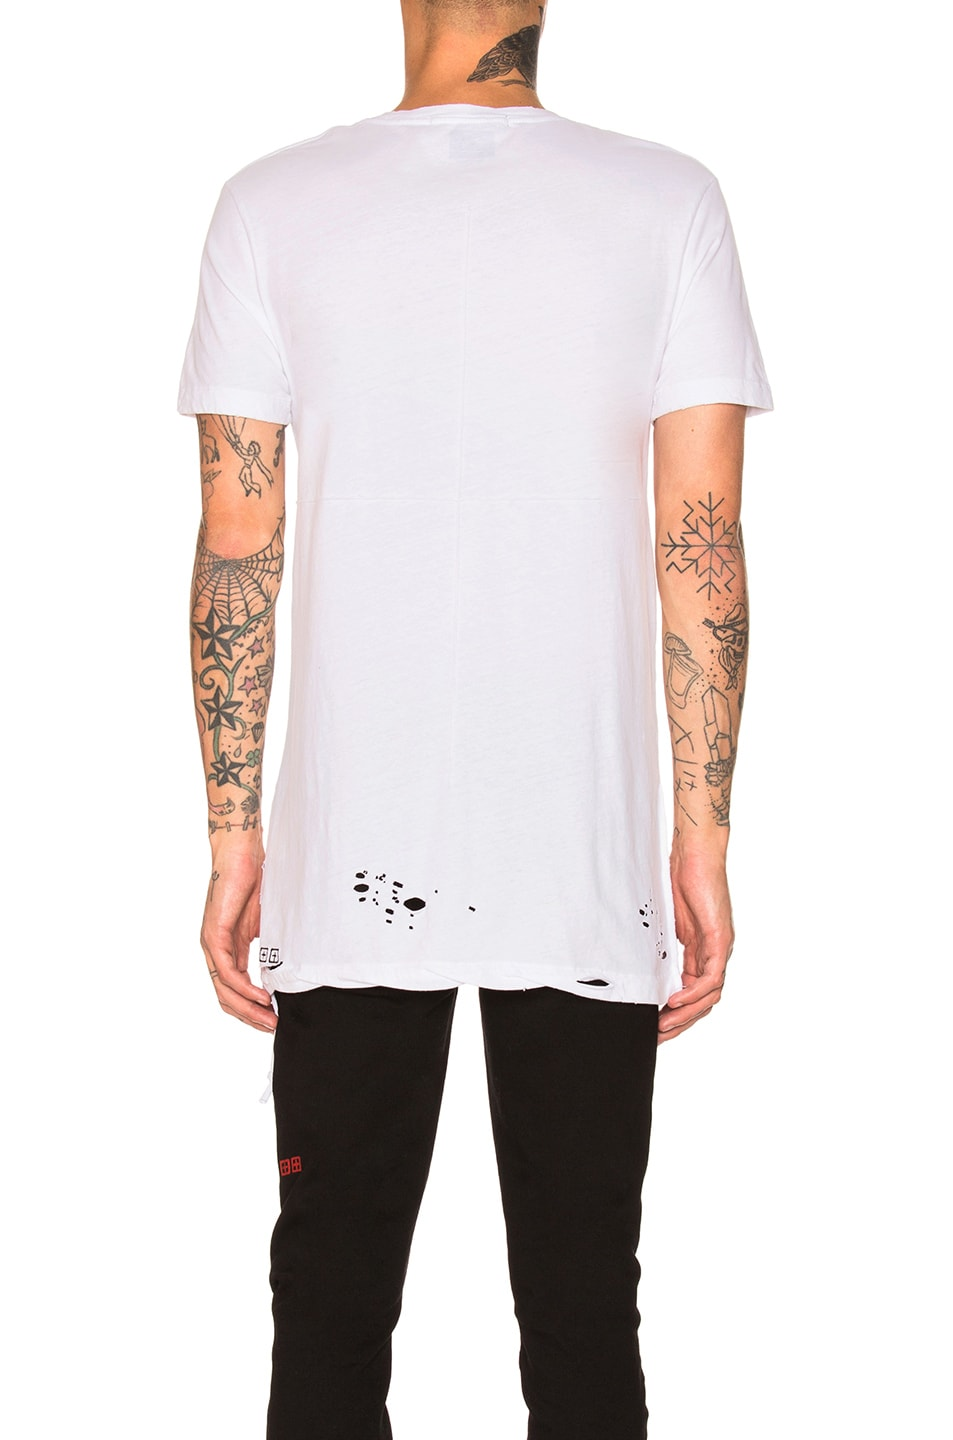 Image 3 of Ksubi Sioux Tee in White